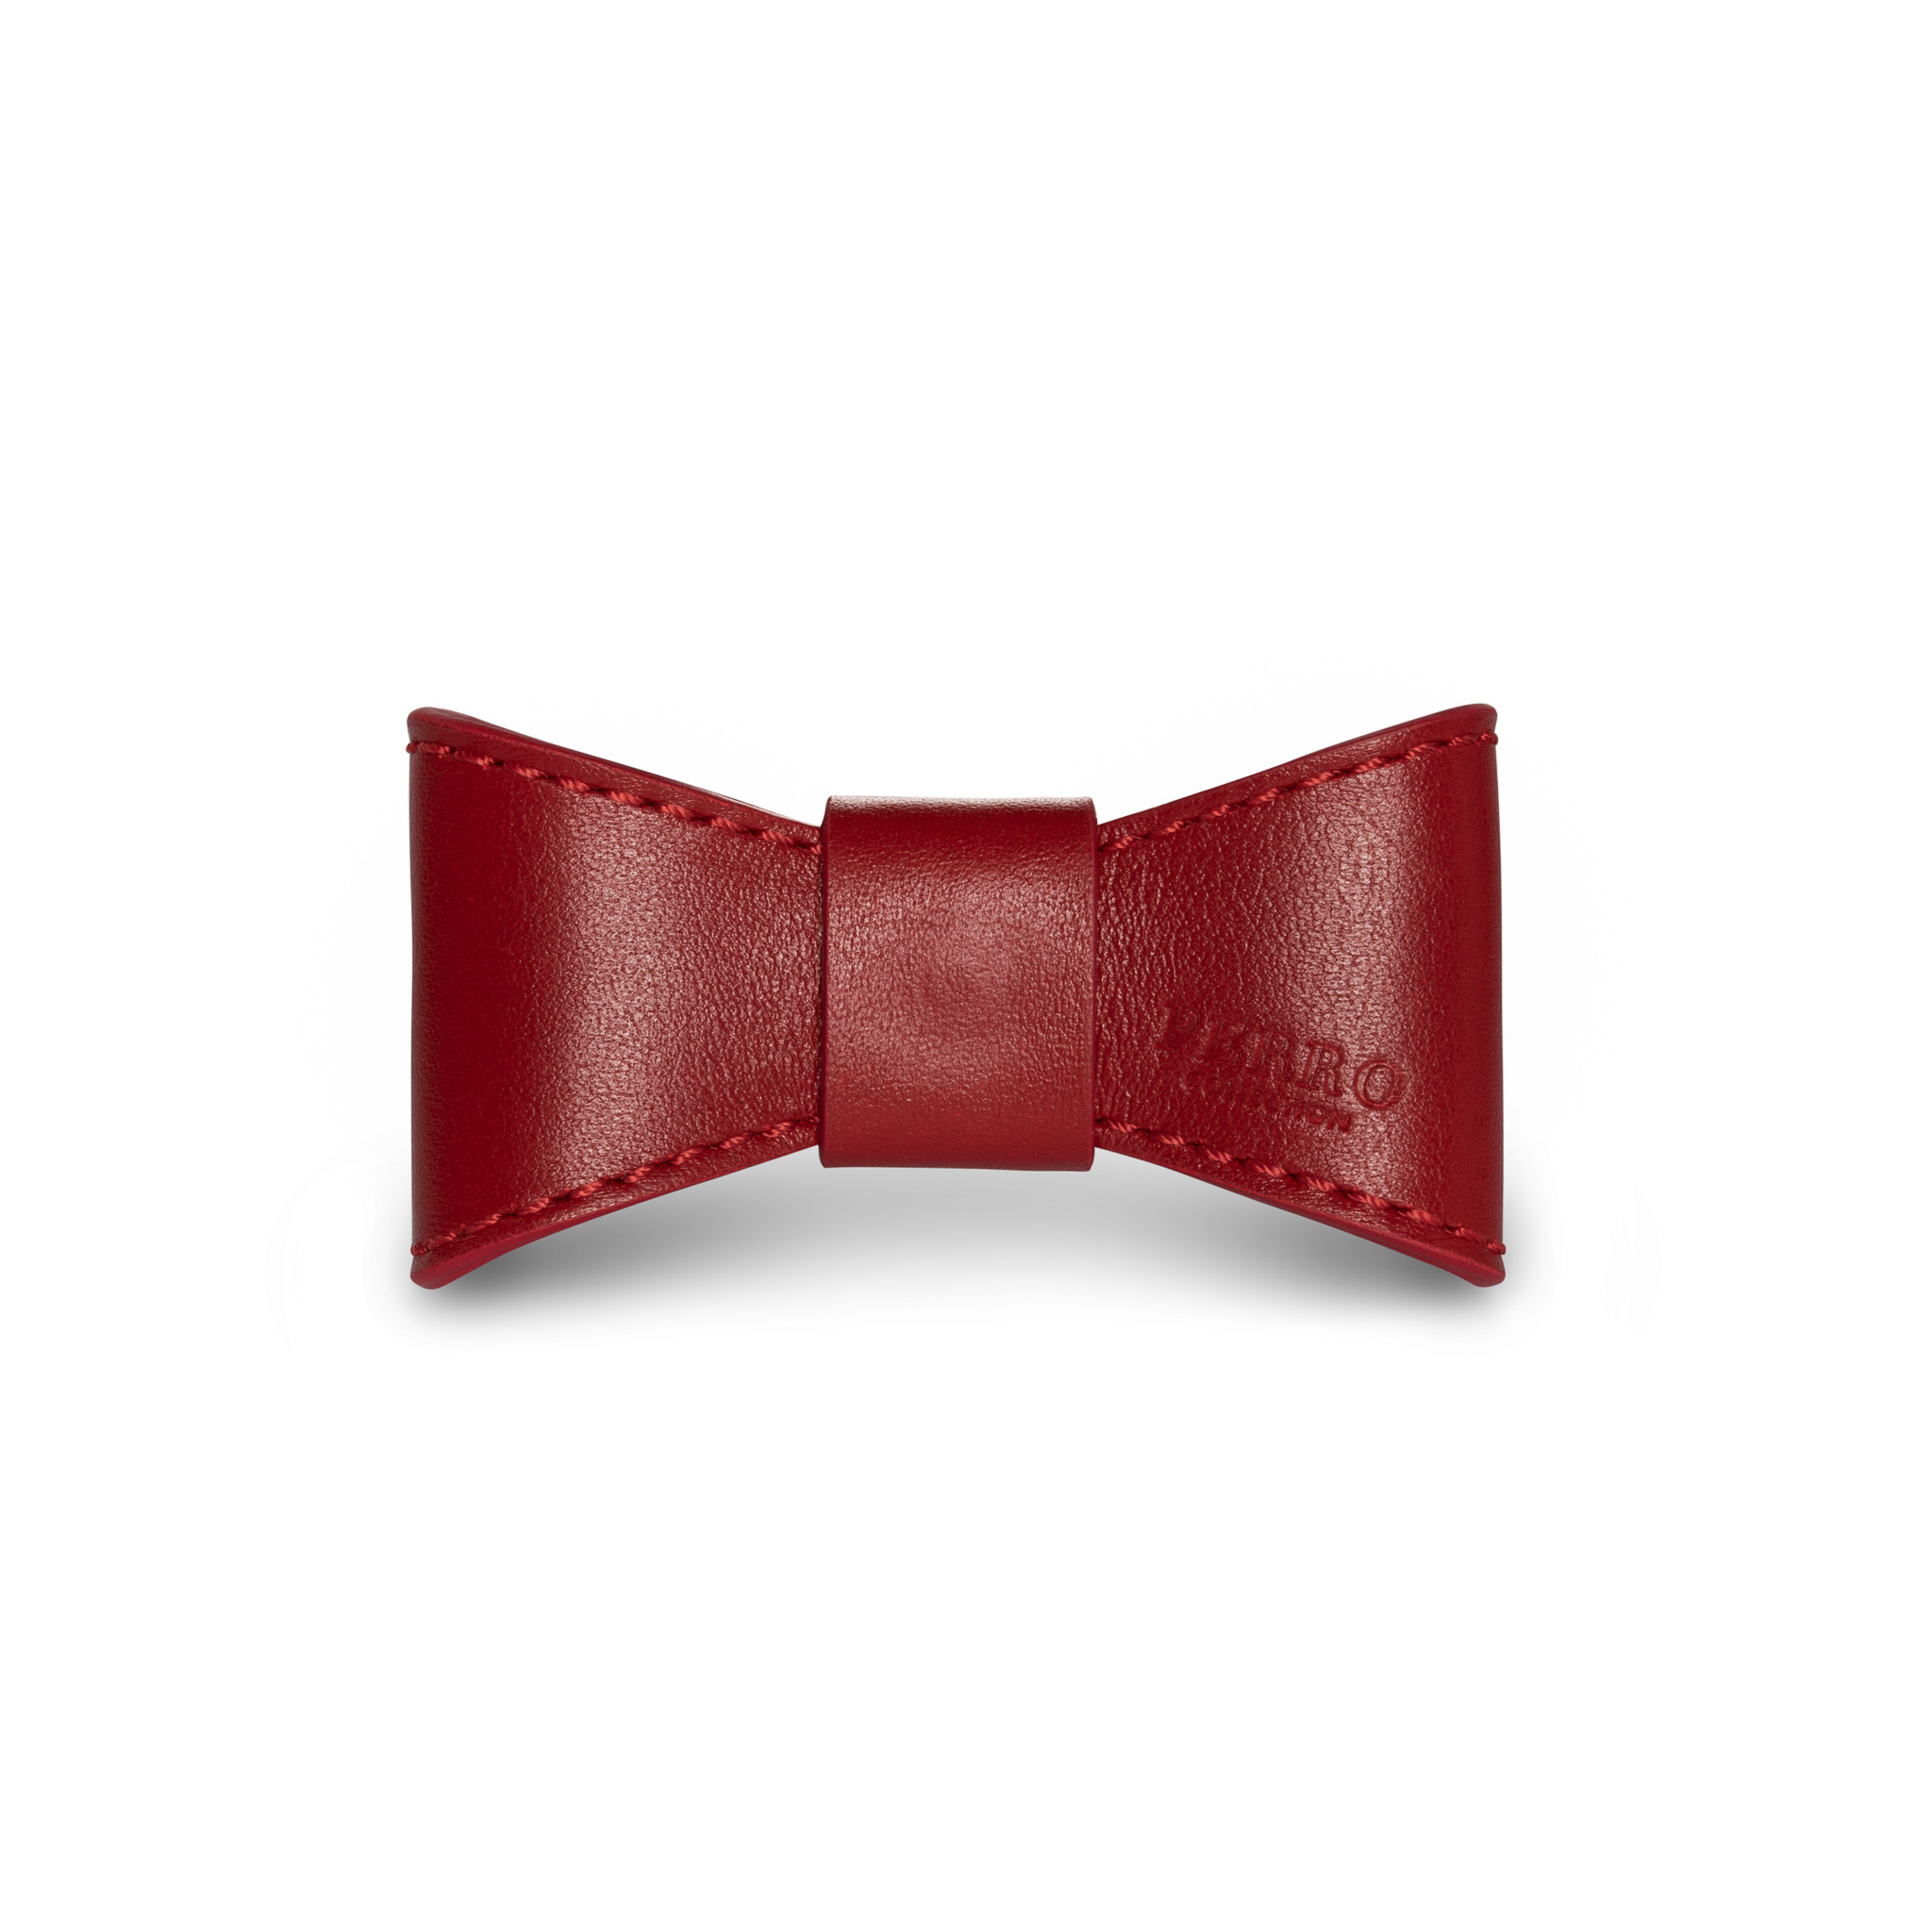 scarlet leather bowtie red bow tie dogbowtie dog